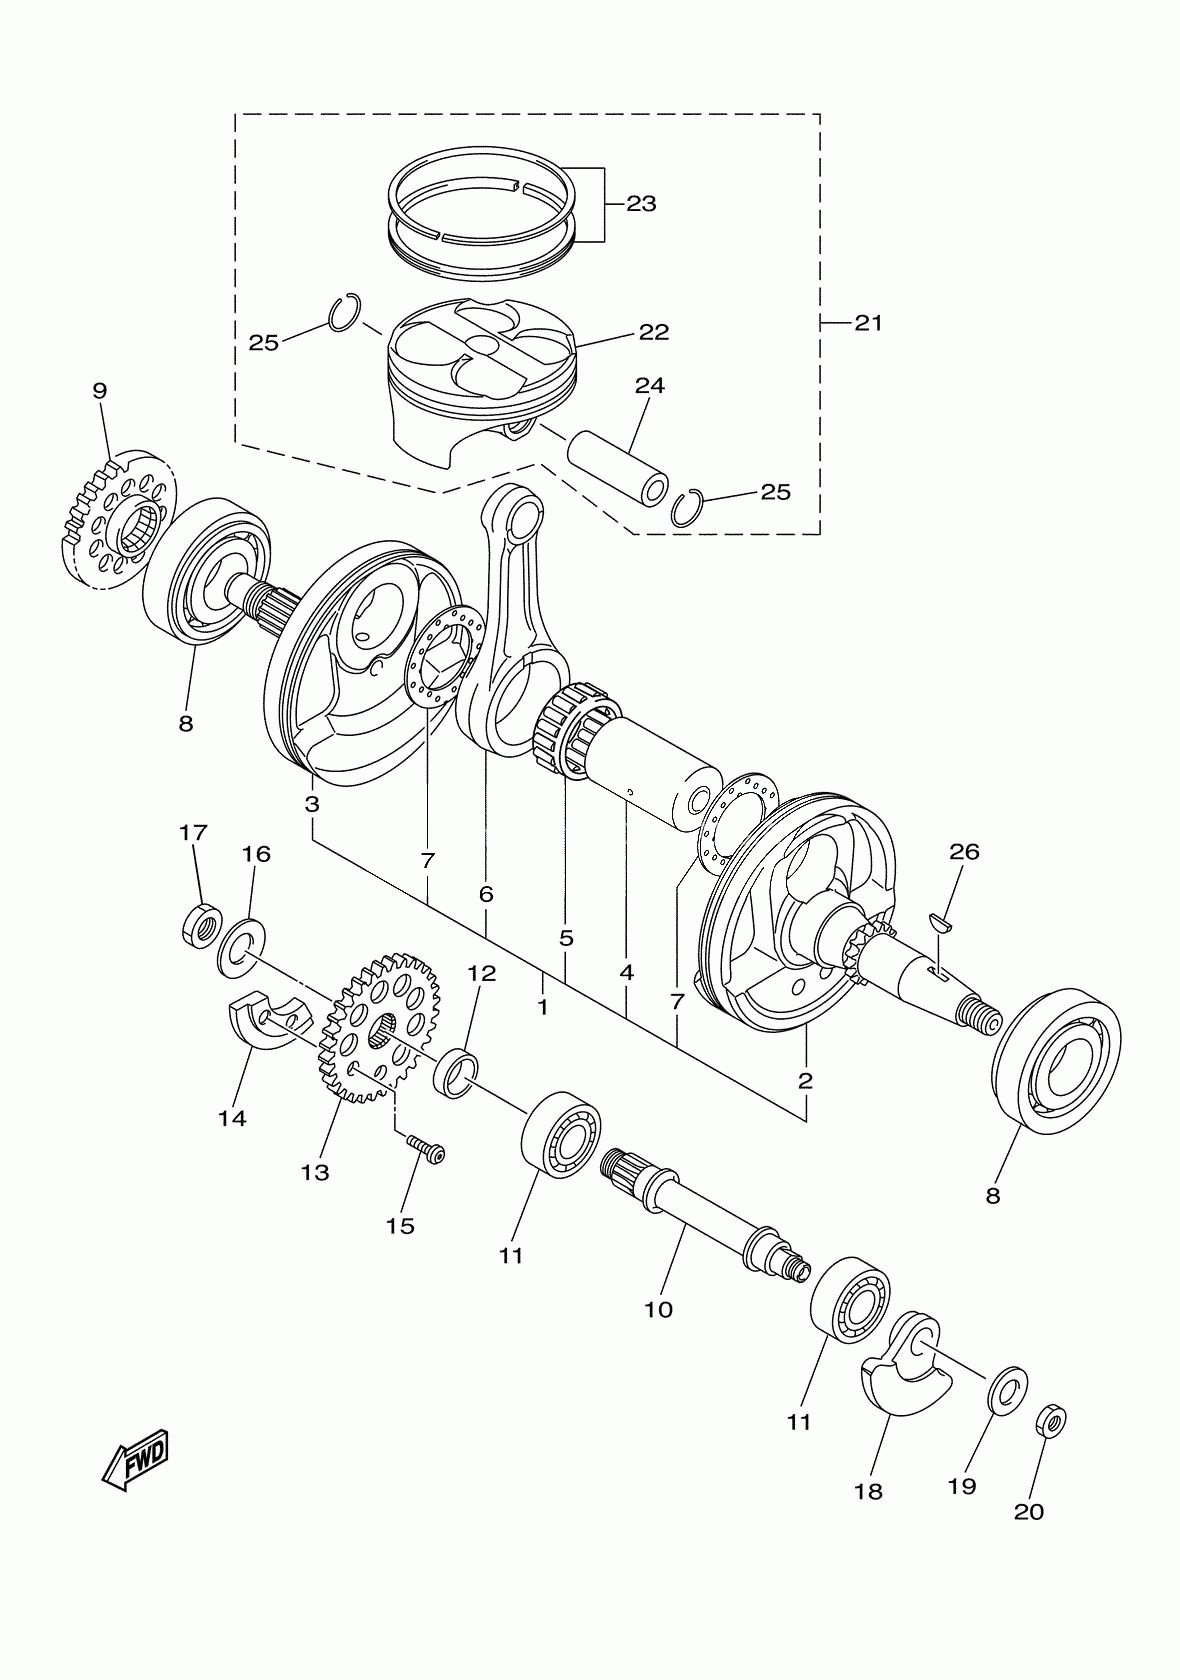 Yz250f Engine Diagram Yz250f Engine Diagram 2017 Yamaha Yz250f Yz250fxh Crankshaft Piston Of Yz250f Engine Diagram